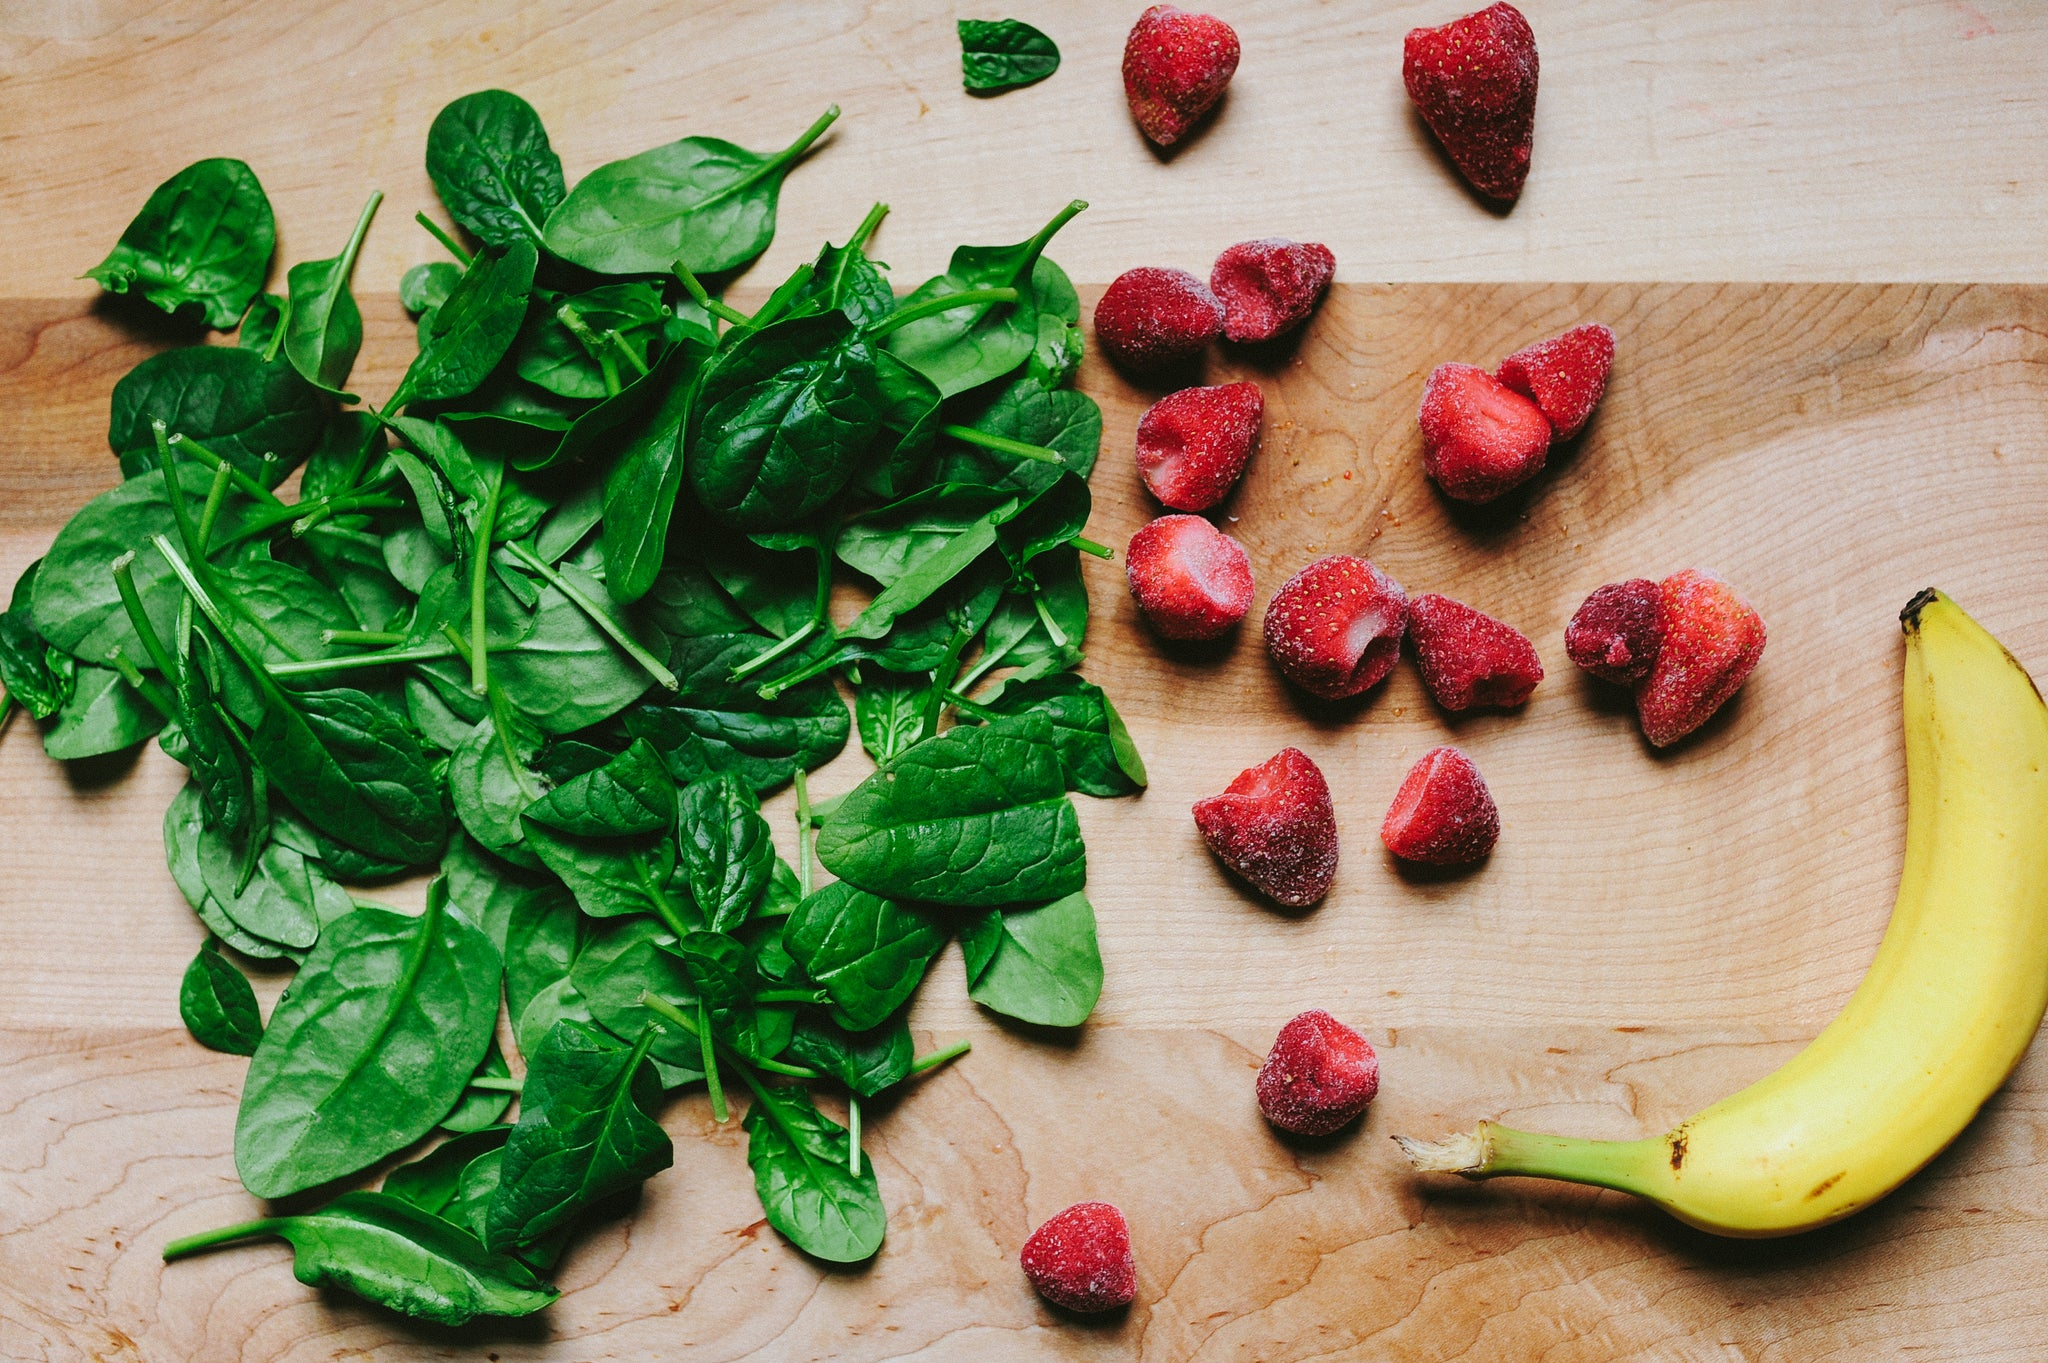 Greens, berries and banana for green smoothie